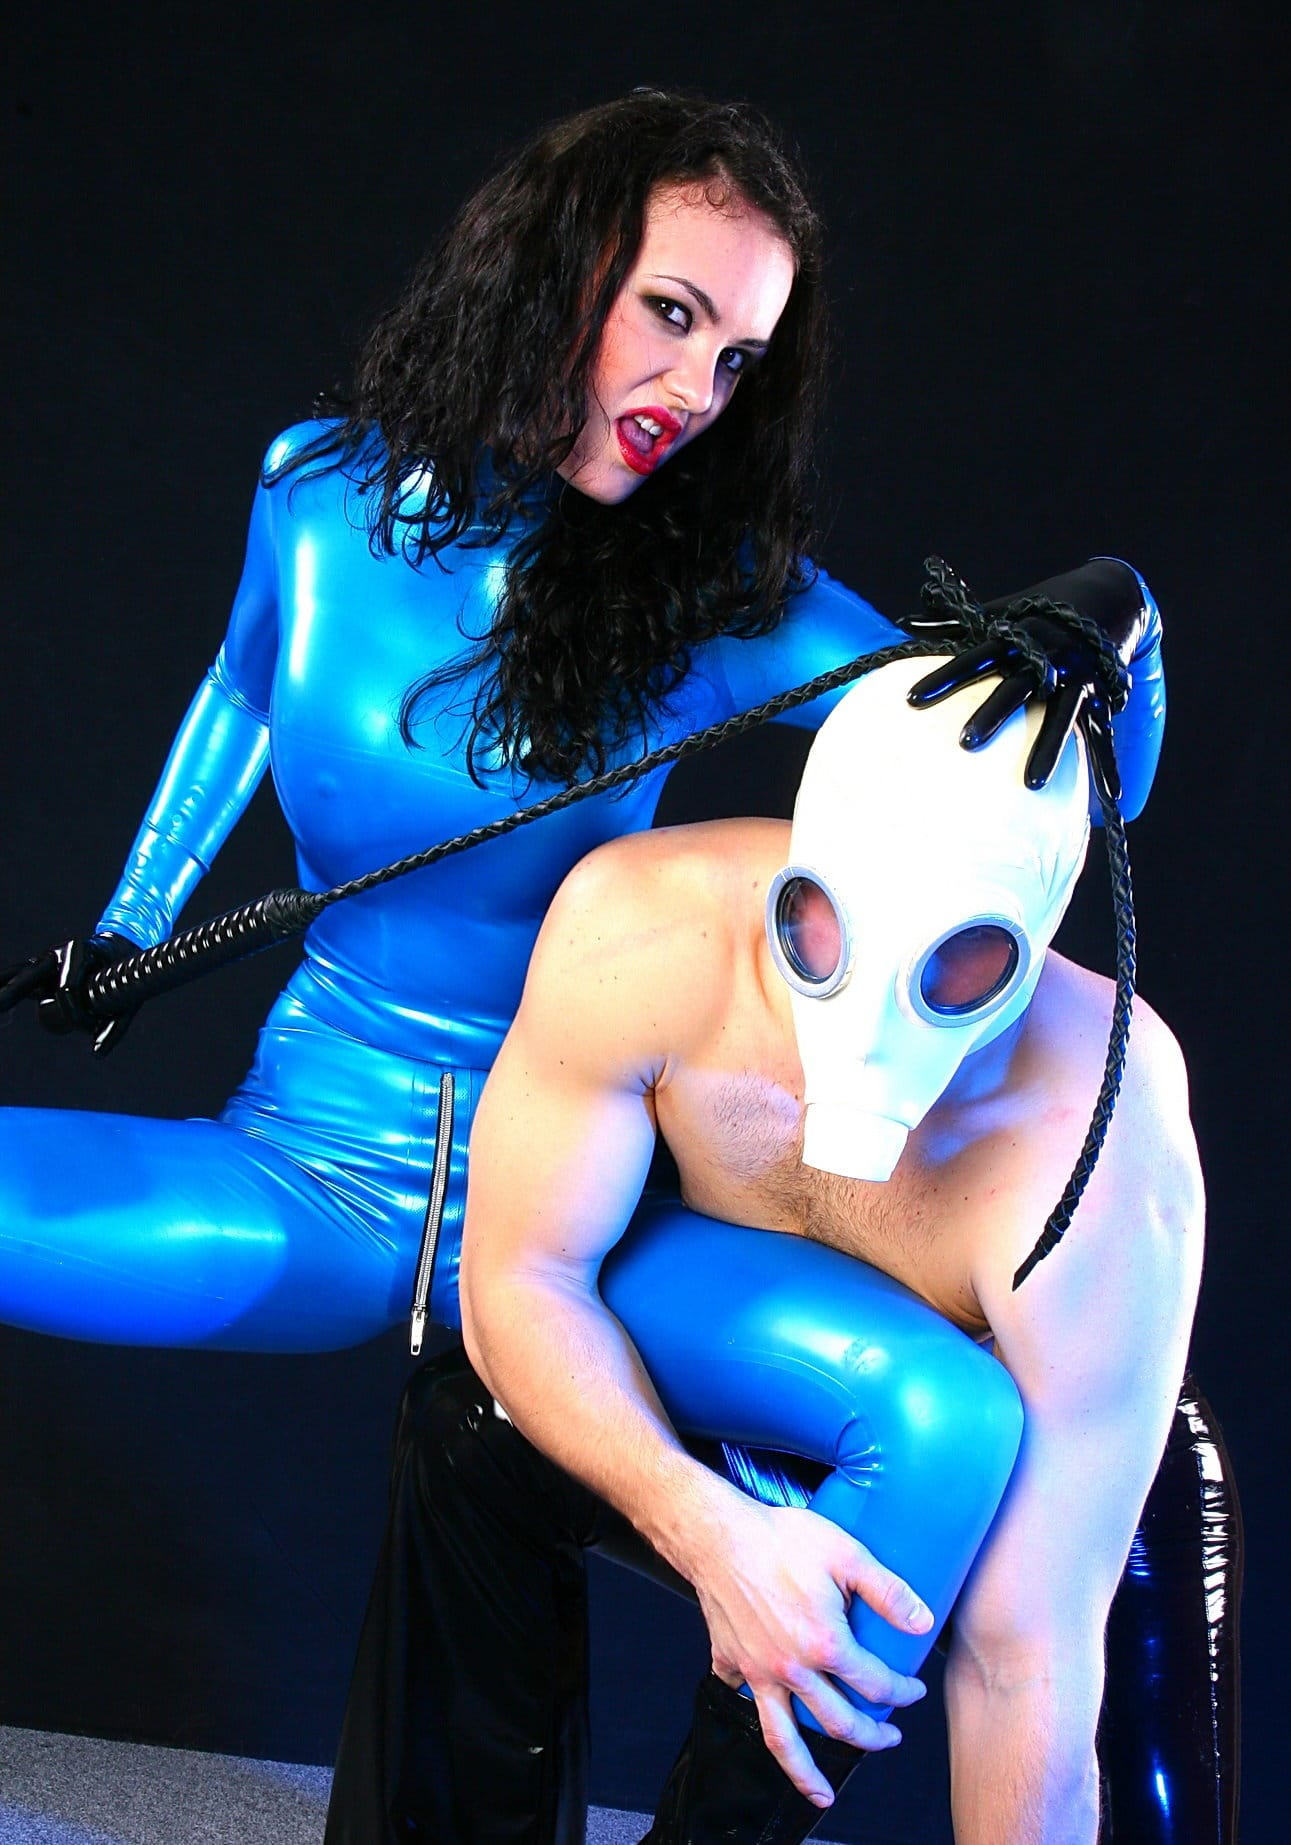 latex-heaven-blue-latex-dominatrix